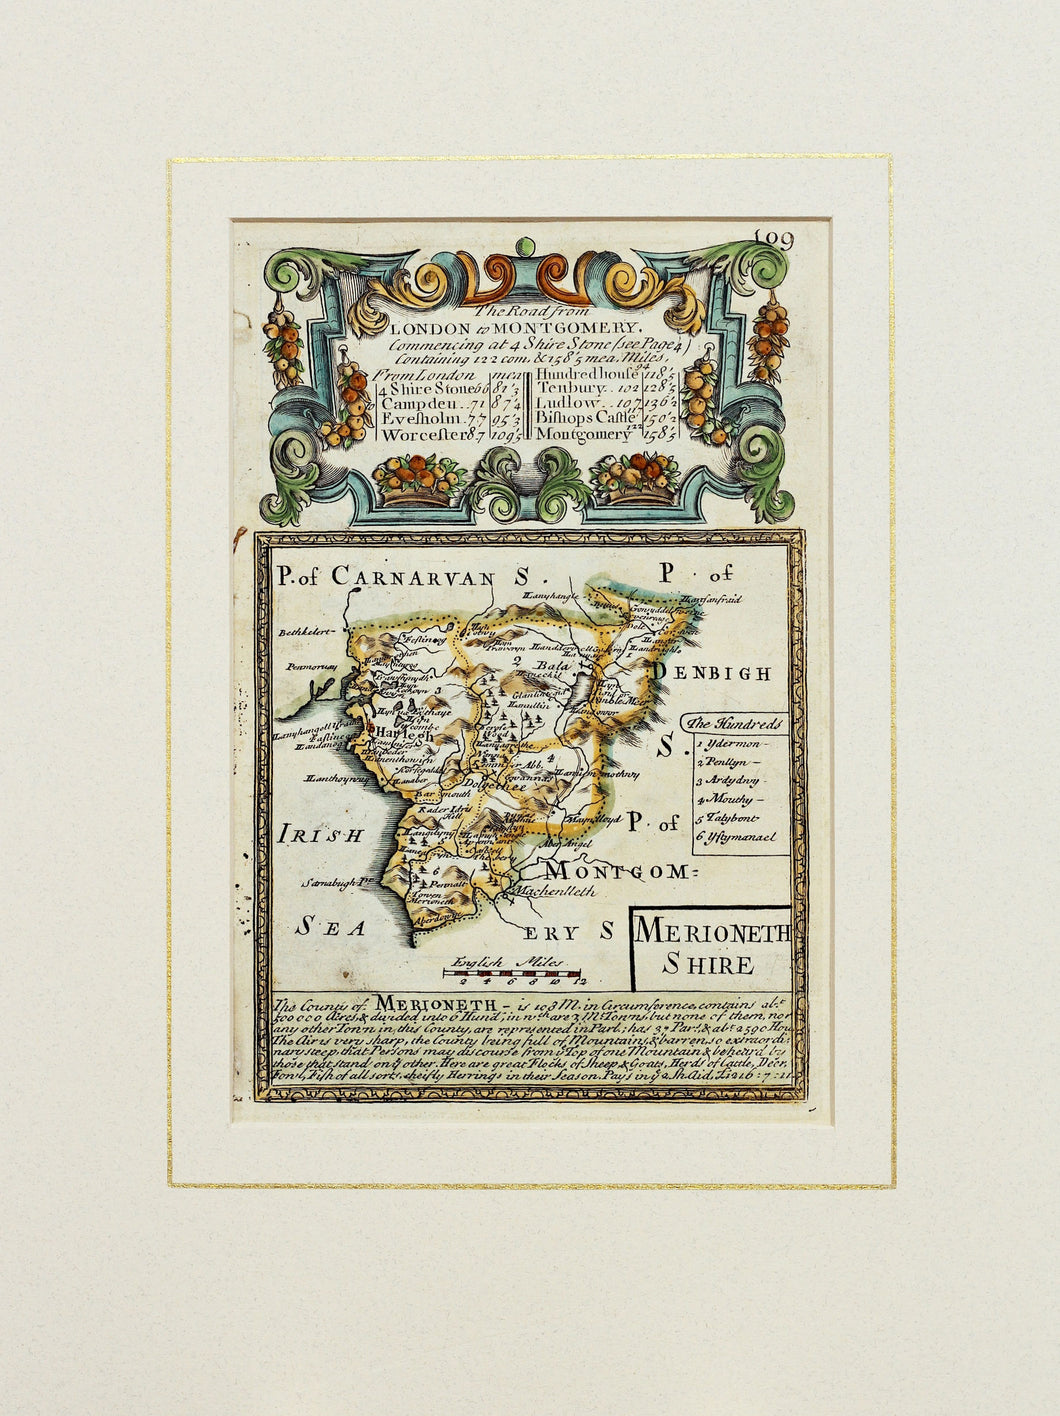 The Road From London to Montgomery - Antique Map by Owen/Bowen circa 1720